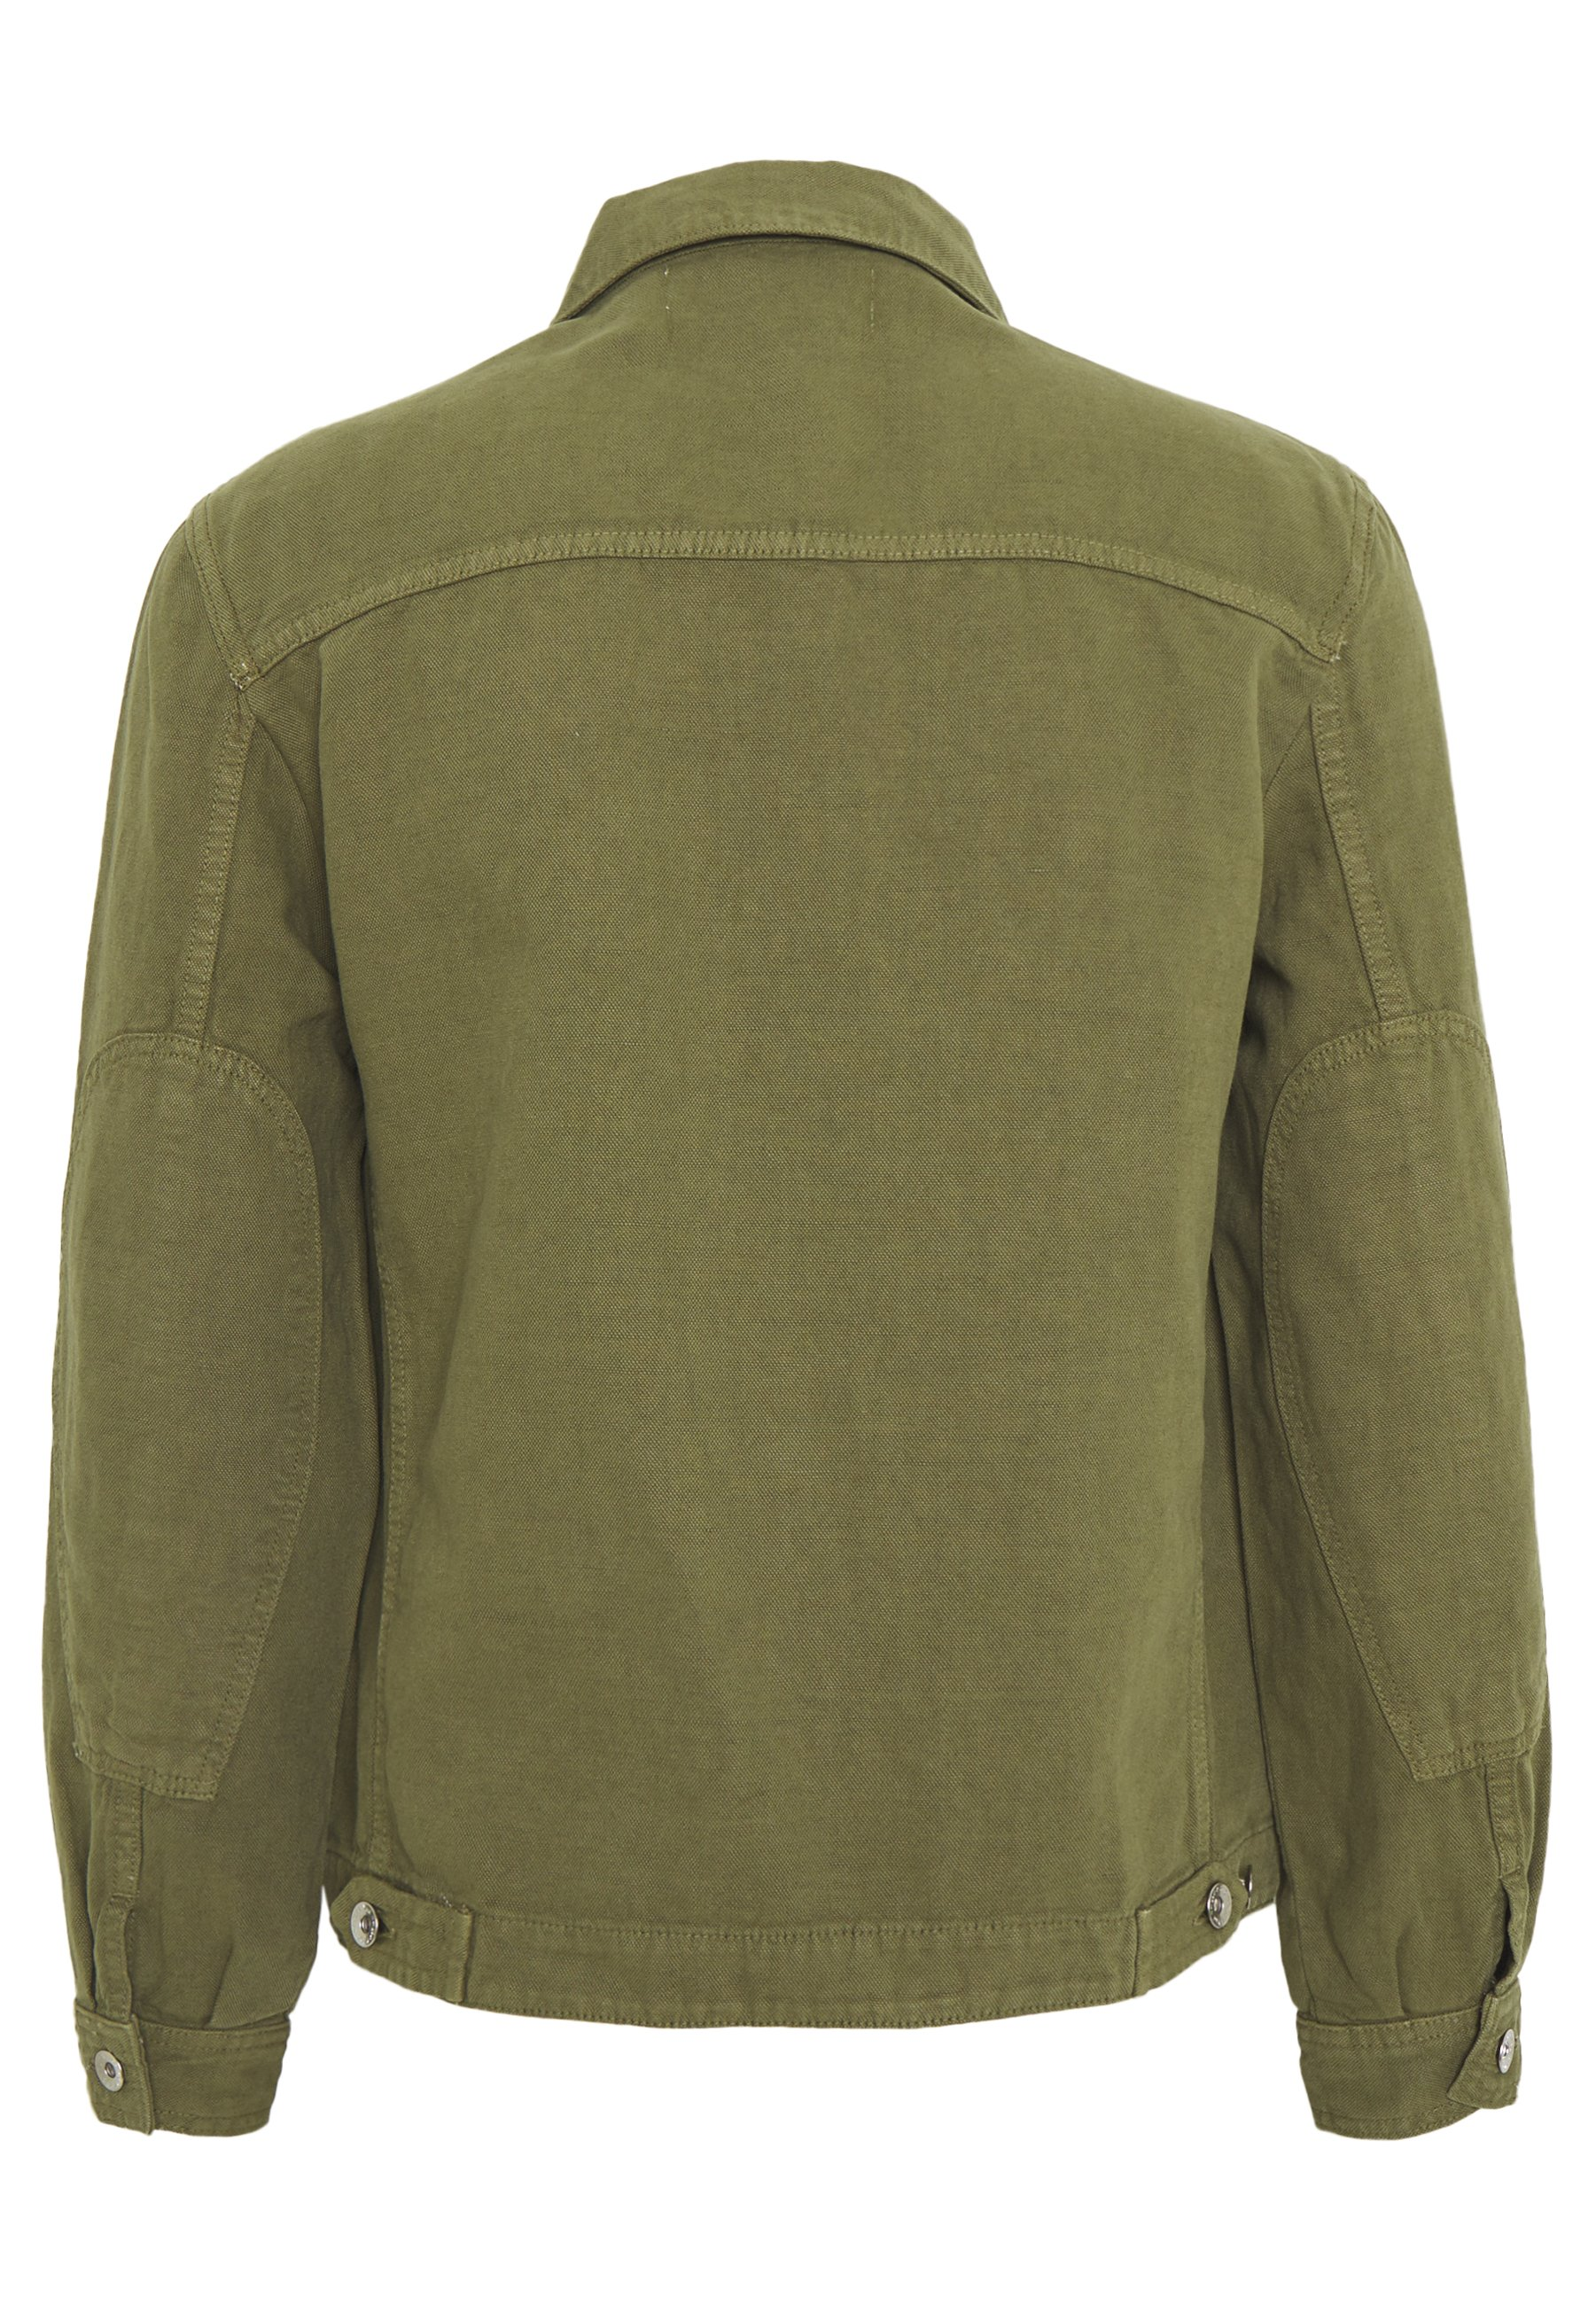 Ymc You Must Create Pinkley Jacket - Summer Olive